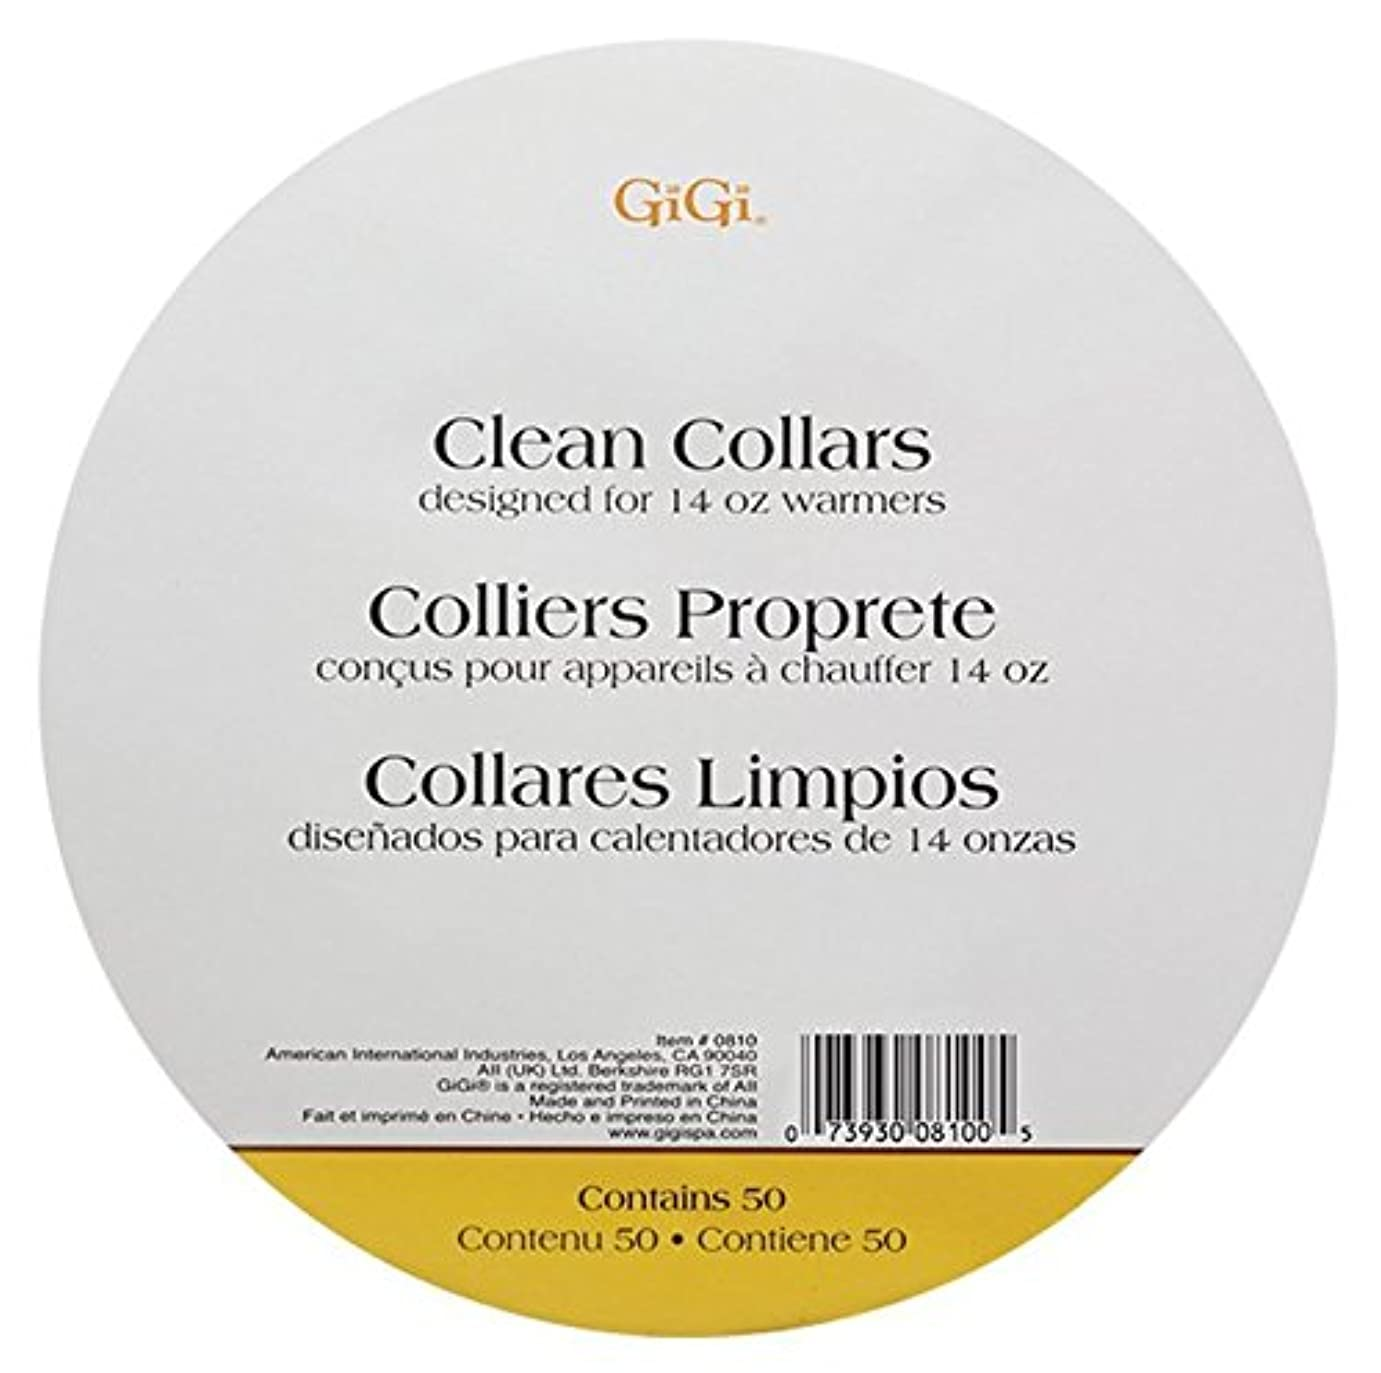 Gigi Clean Collars For 14 oz by GiGi